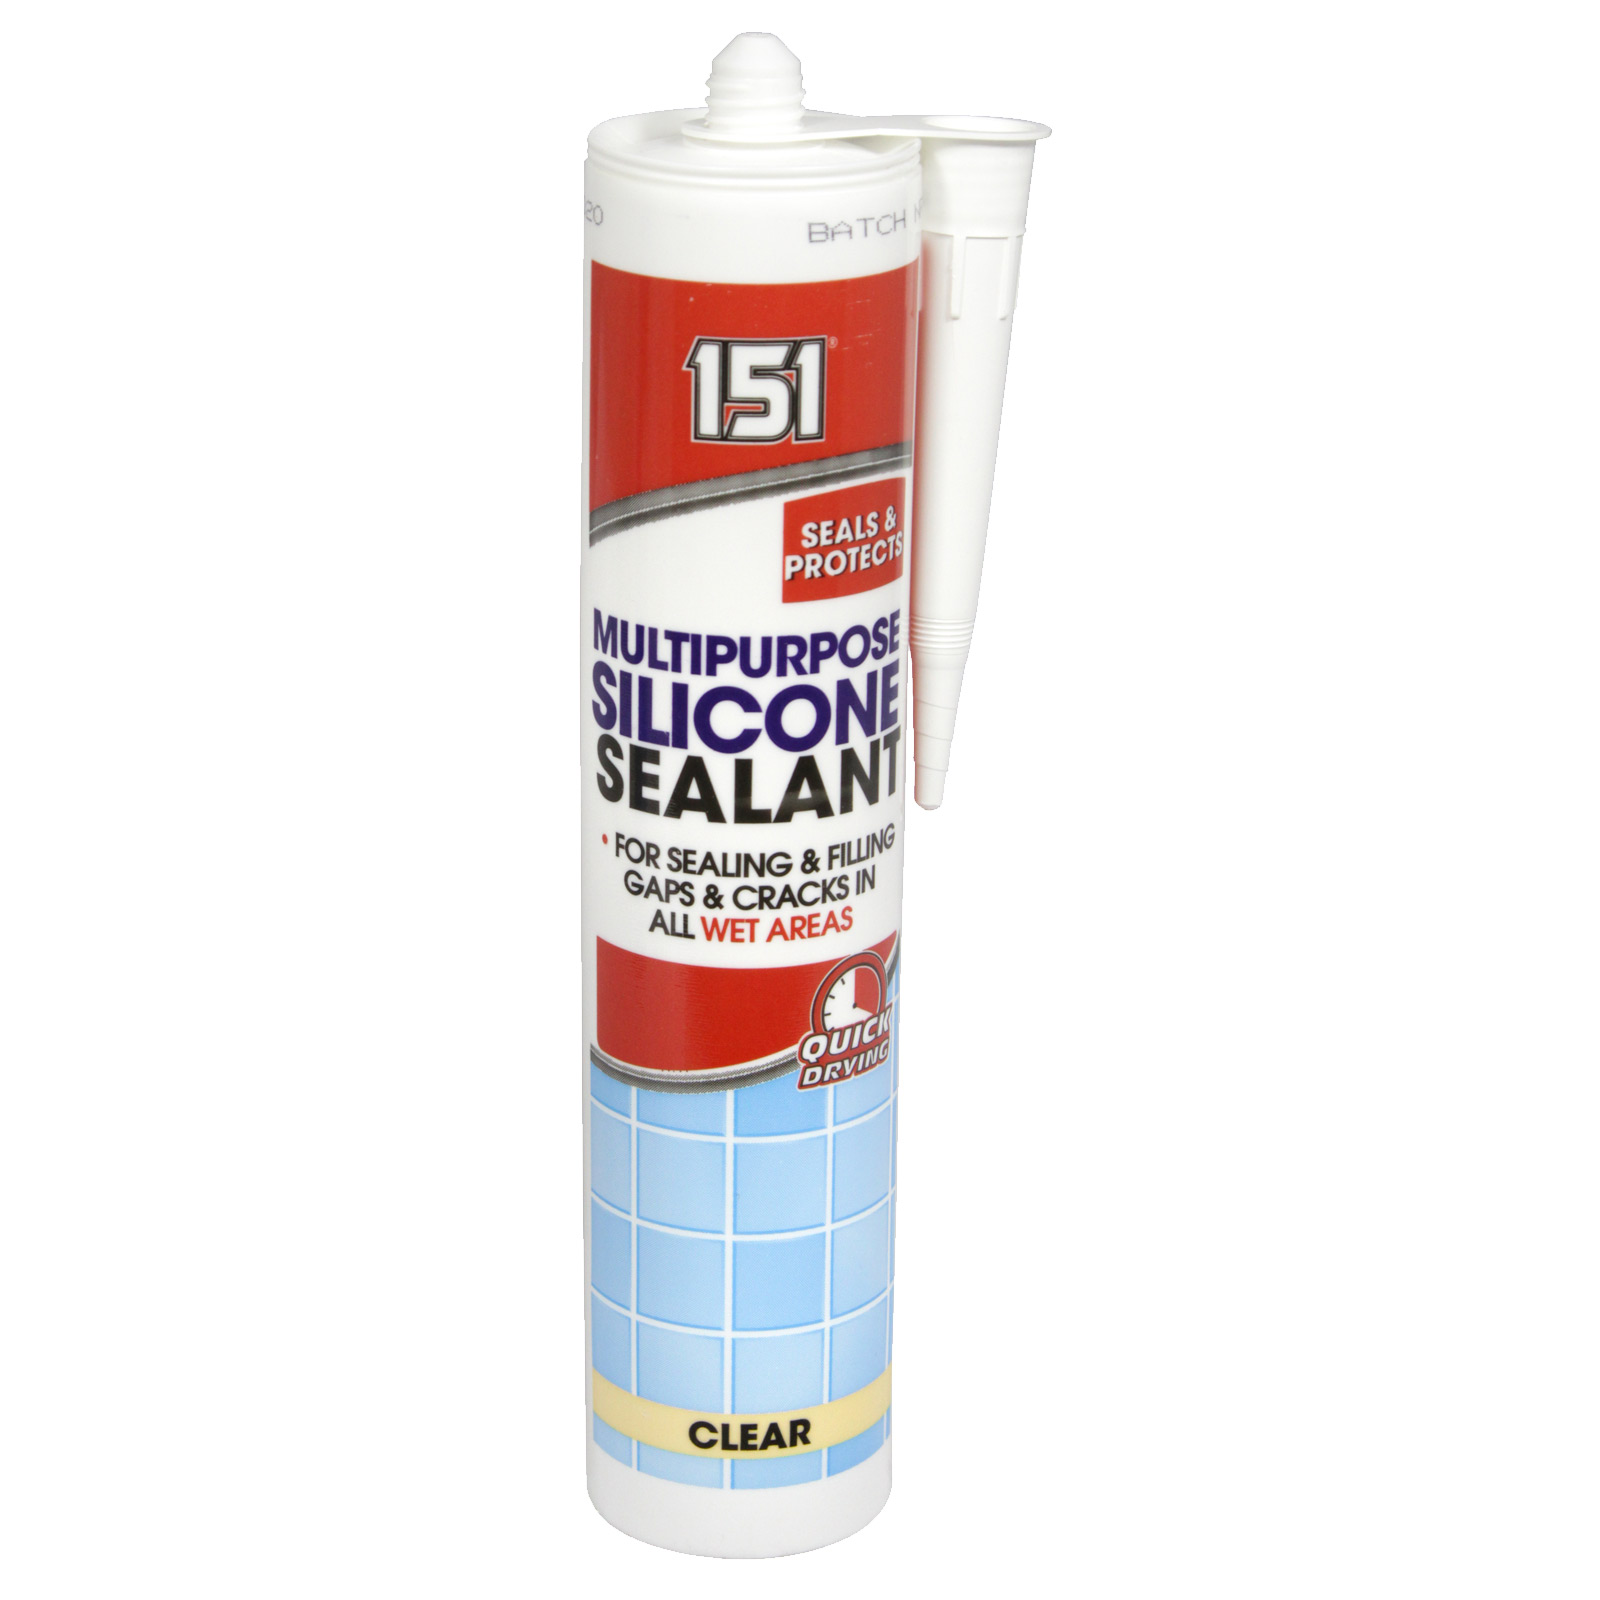 151 MULTI PURPOSE SILICONE SEALANT 280ML CARTRIDGE CLEAR